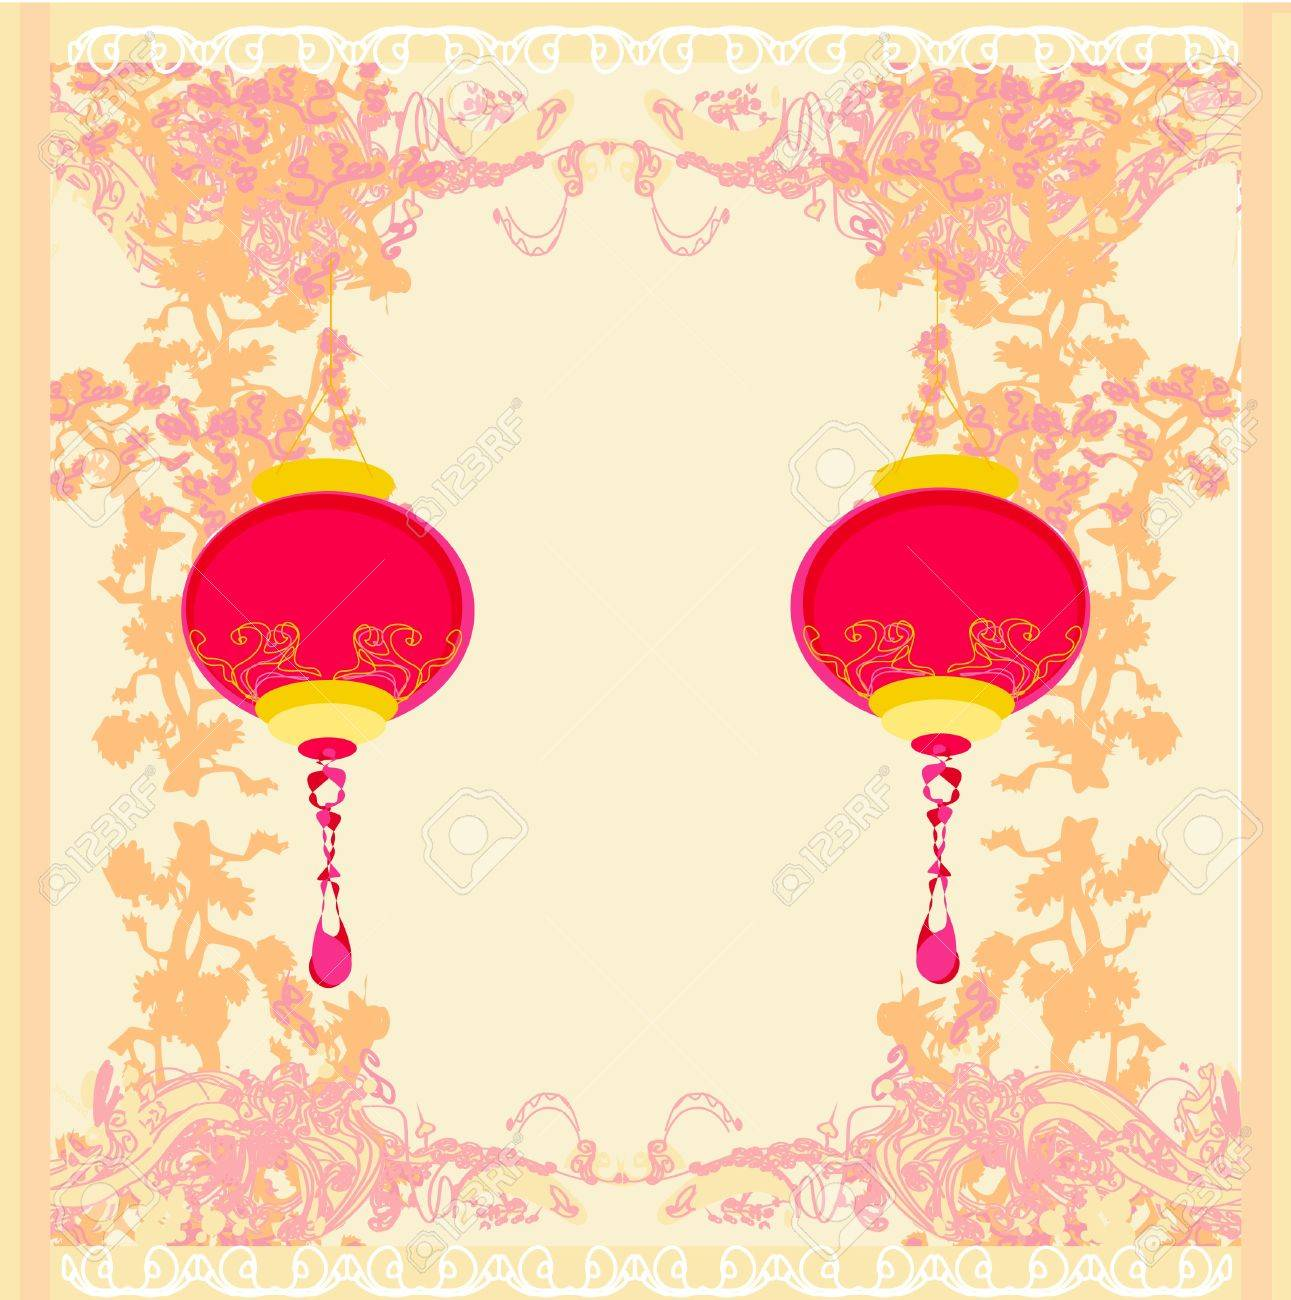 Chinese New Year Card Royalty Free Cliparts, Vectors, And Stock ...